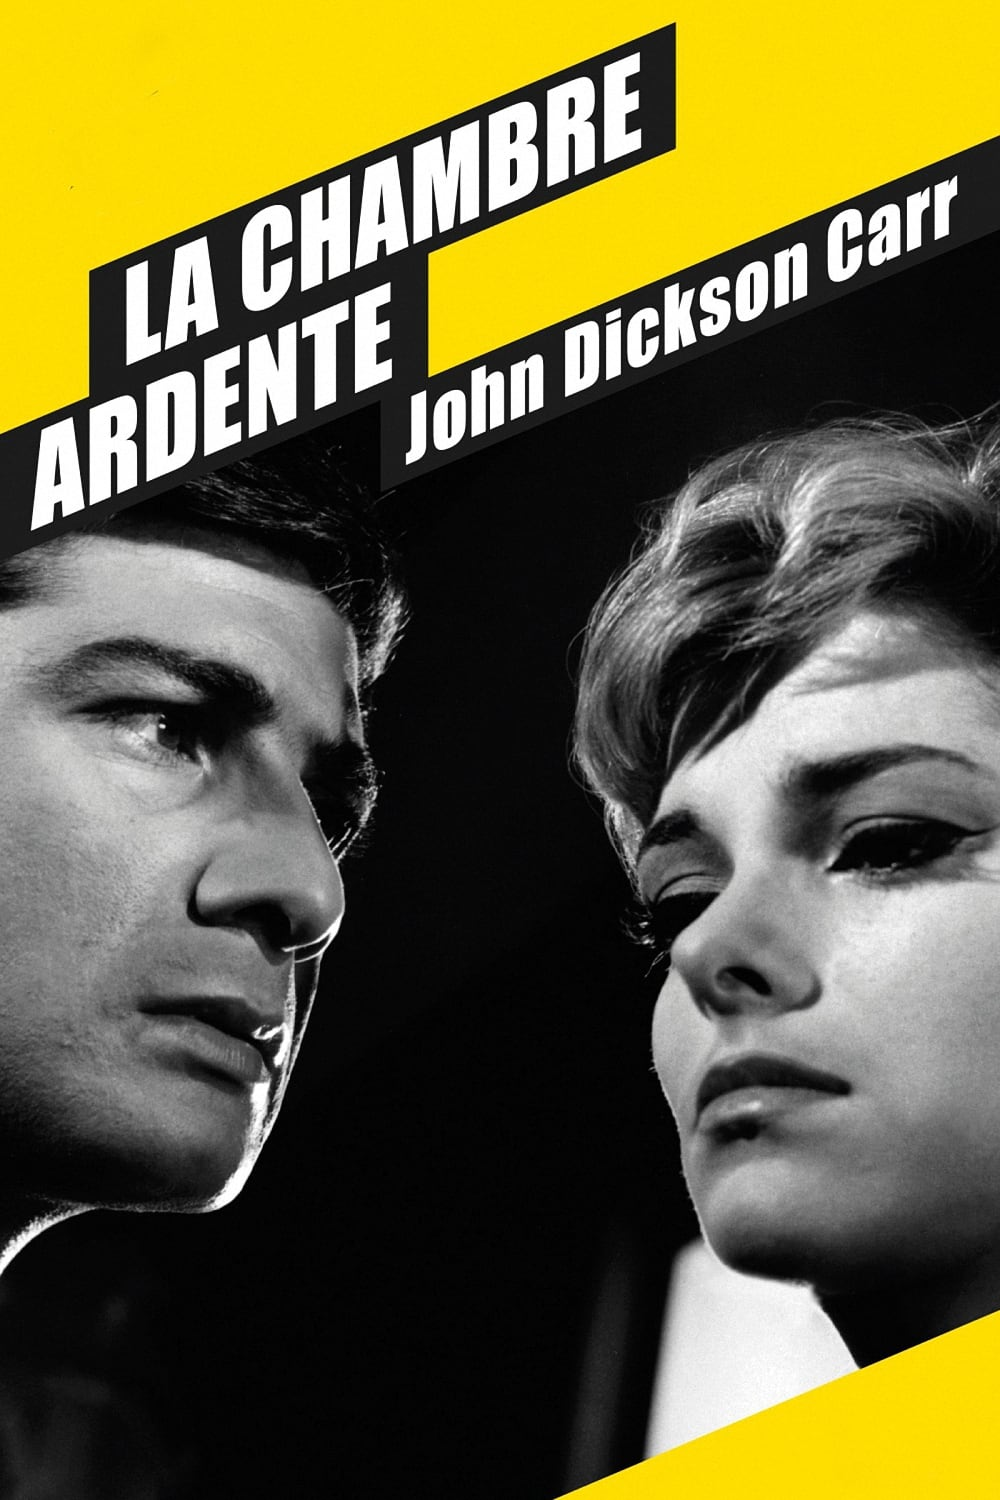 Film la chambre ardente 1962 en streaming vf complet filmstreaming hd com - Chambre 1408 film complet vf ...